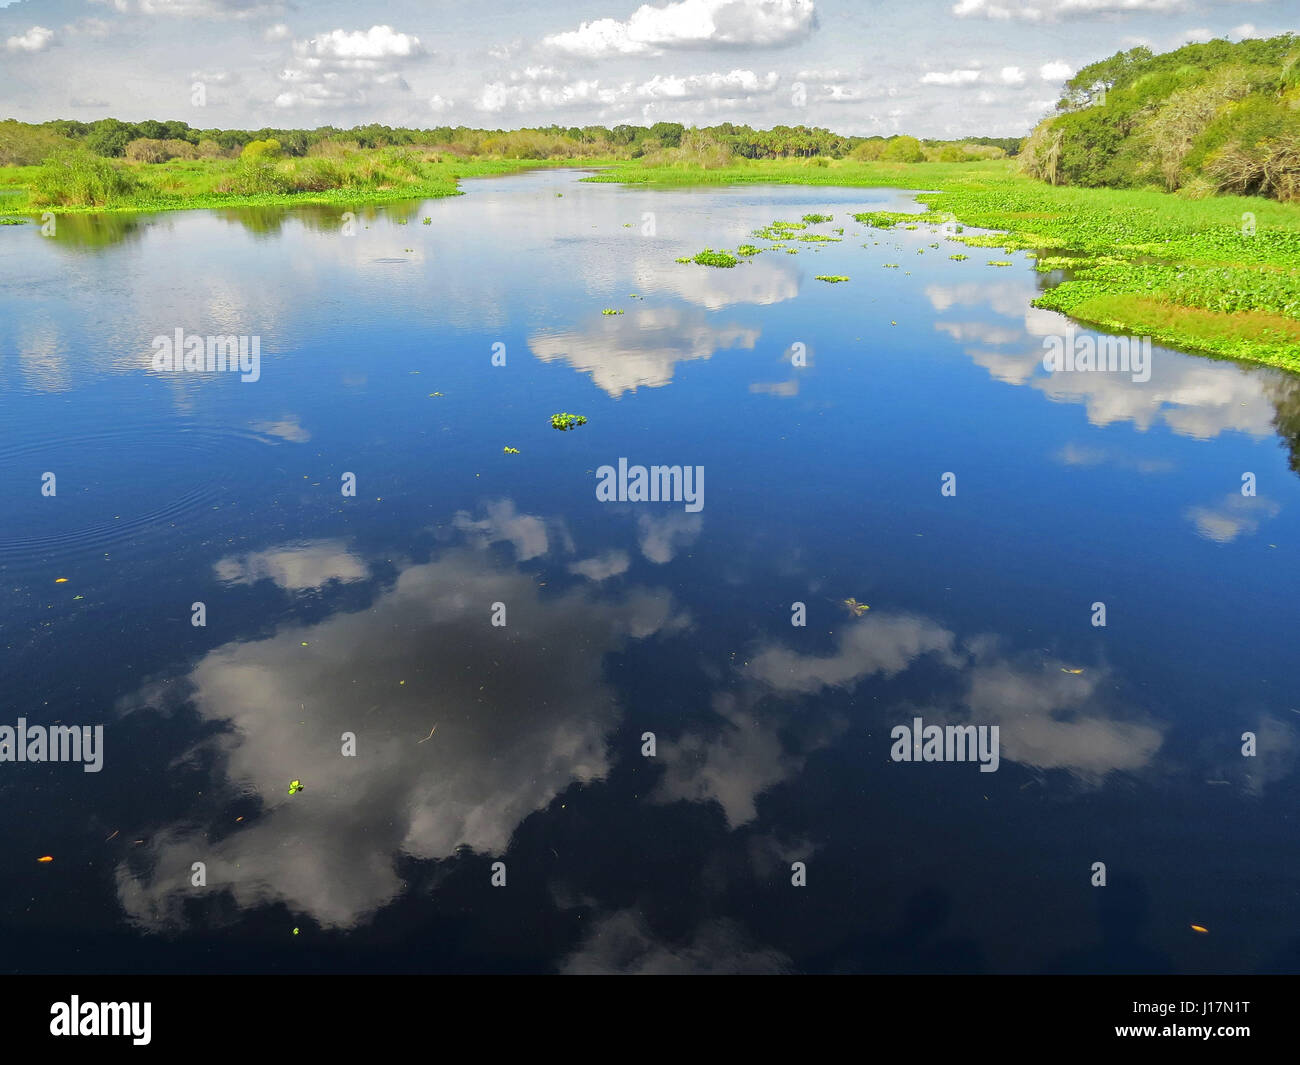 Water reflections of the sky and clouds at Myakka River State Park, Florida - Stock Image